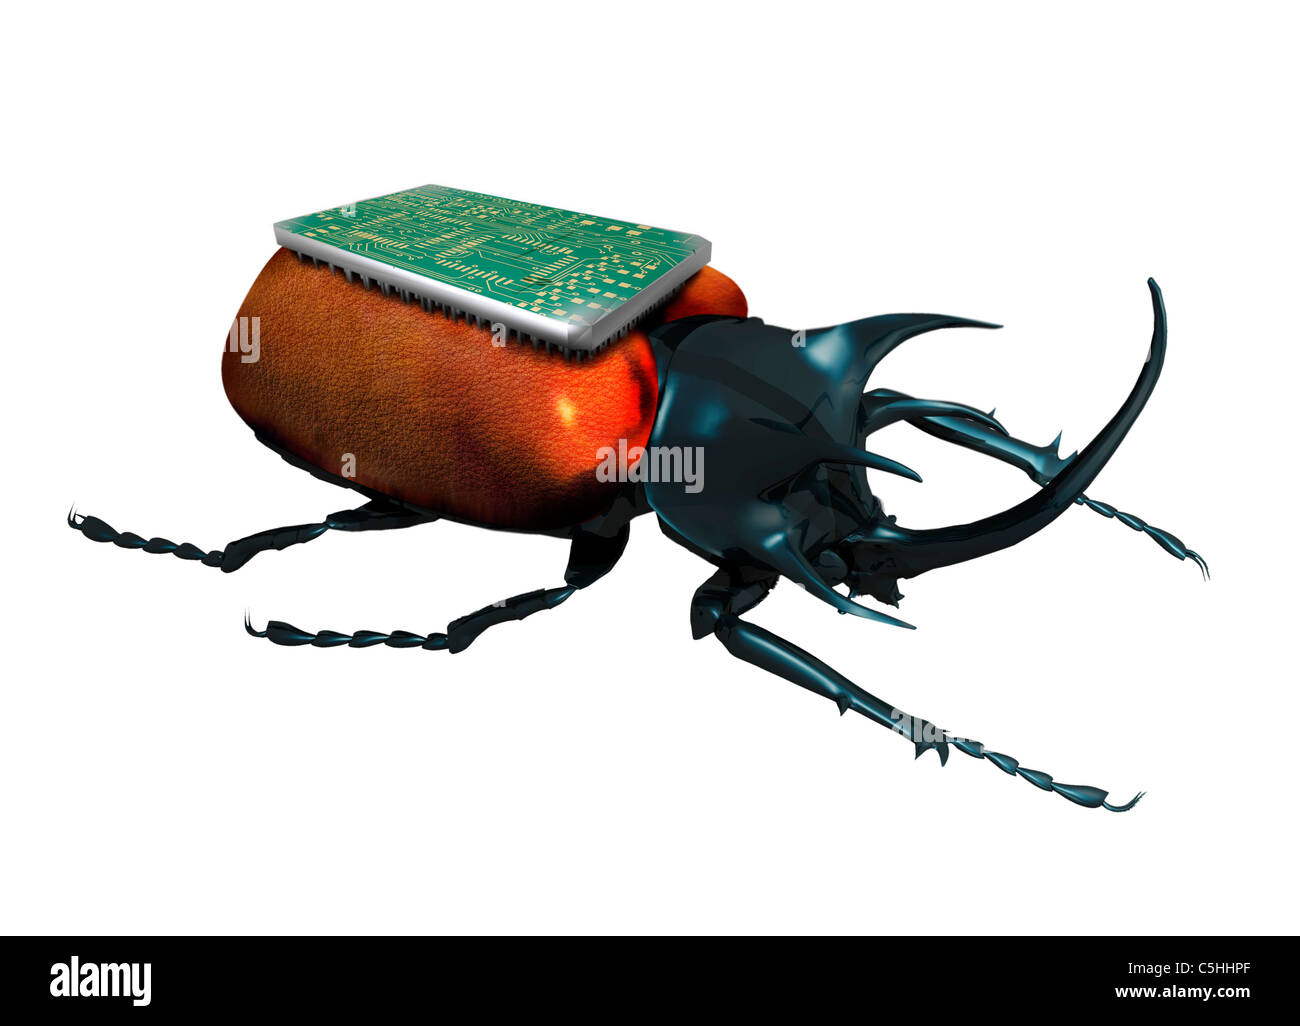 Insect spy, conceptual artwork - Stock Image